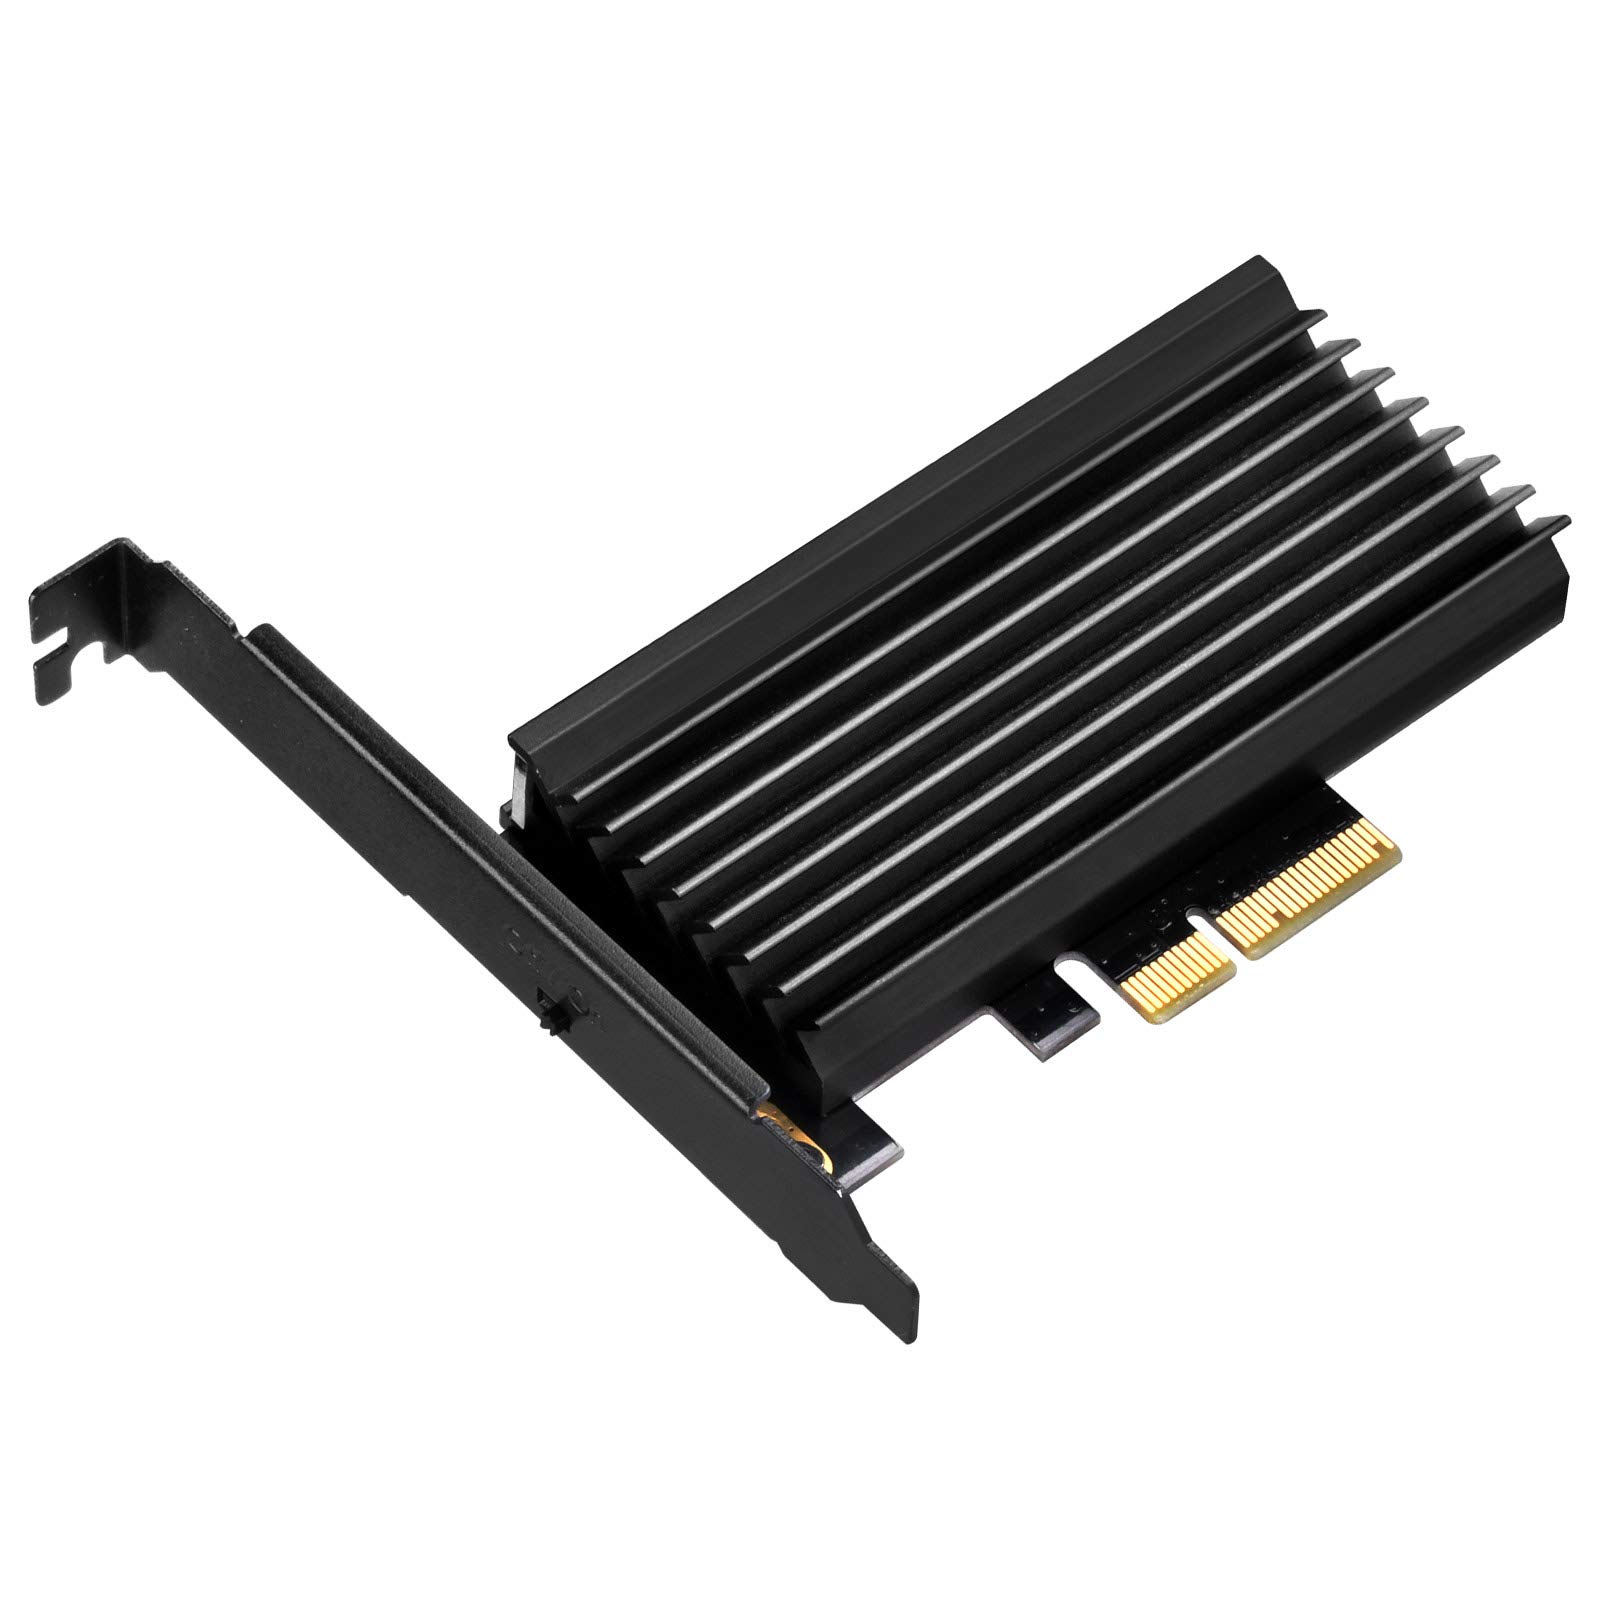 SilverStone Technology M.2 M Key PCIe NVMe Adapter to PCIe X4 with Integrated Heatsink SST-ECM24 by SilverStone Technology (Image #1)